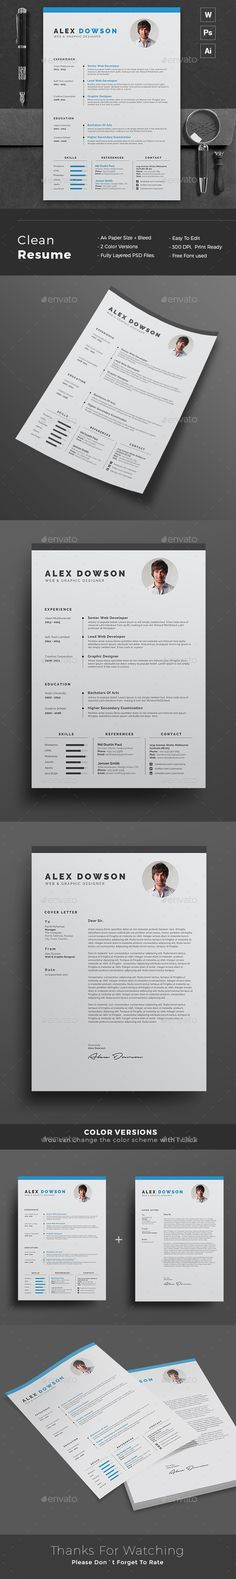 Resume Resume cv, Cv template and Cv ideas - resume generator read write think